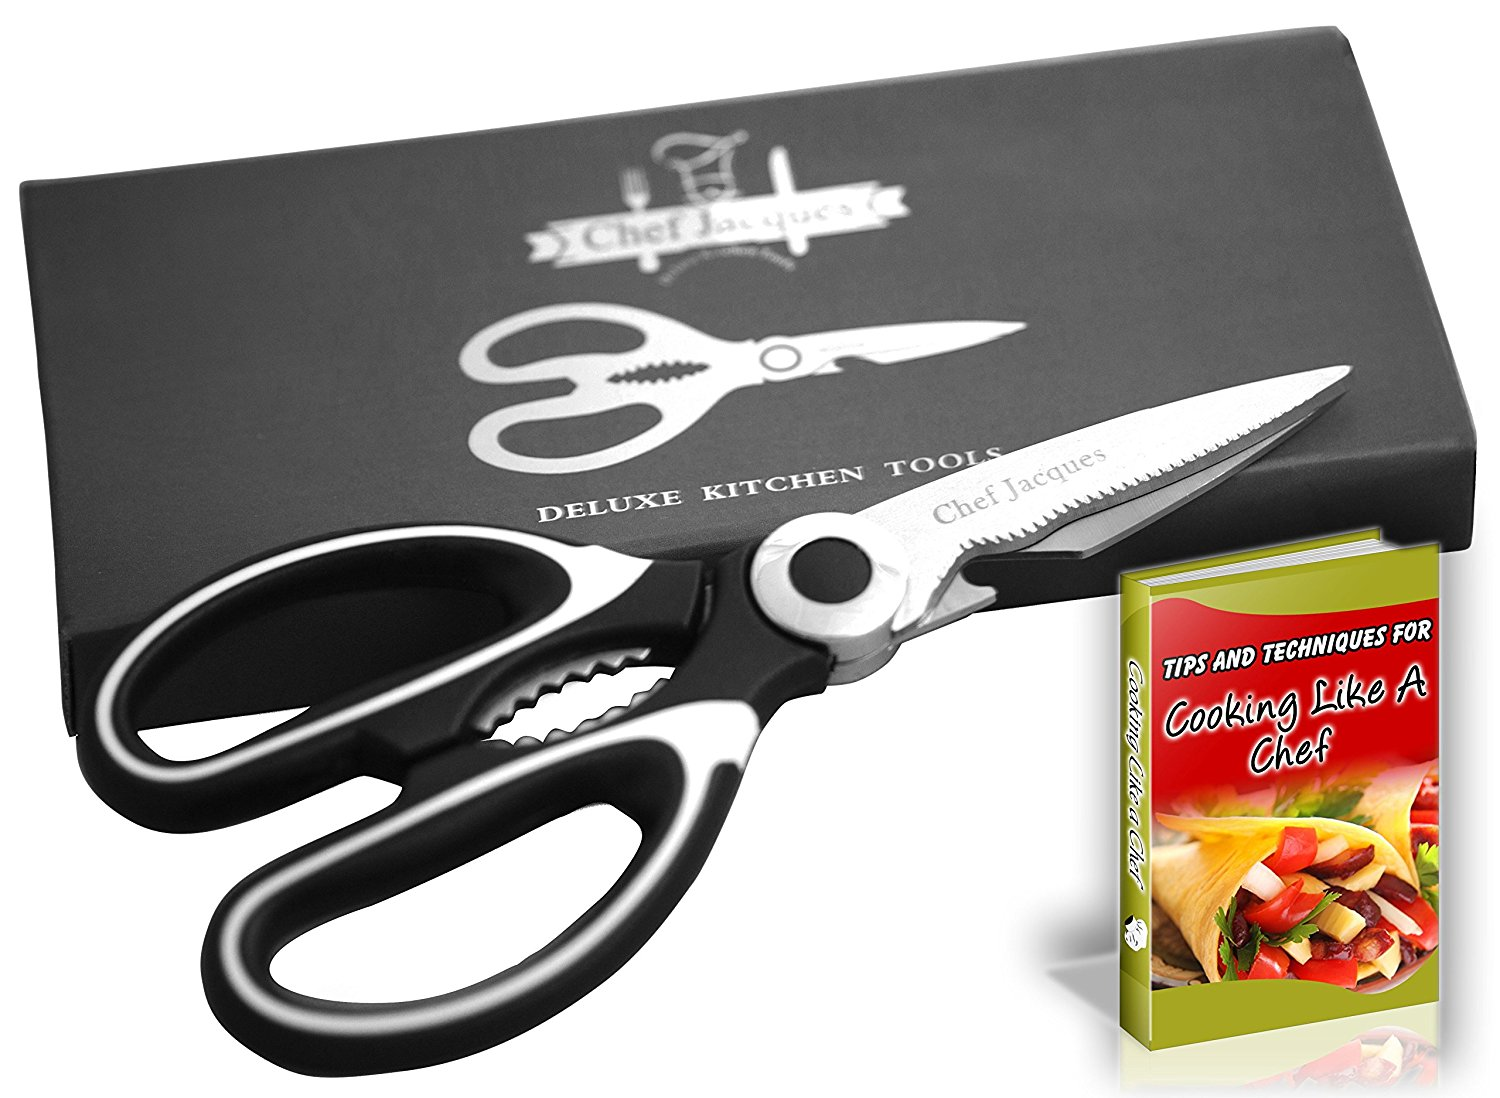 Chef Jacques Multipurpose Kitchen Scissors   Shears, Nut Cracker, Bottle Opener & Fish Scaling Tool |... by Chef Jacques America's Choice